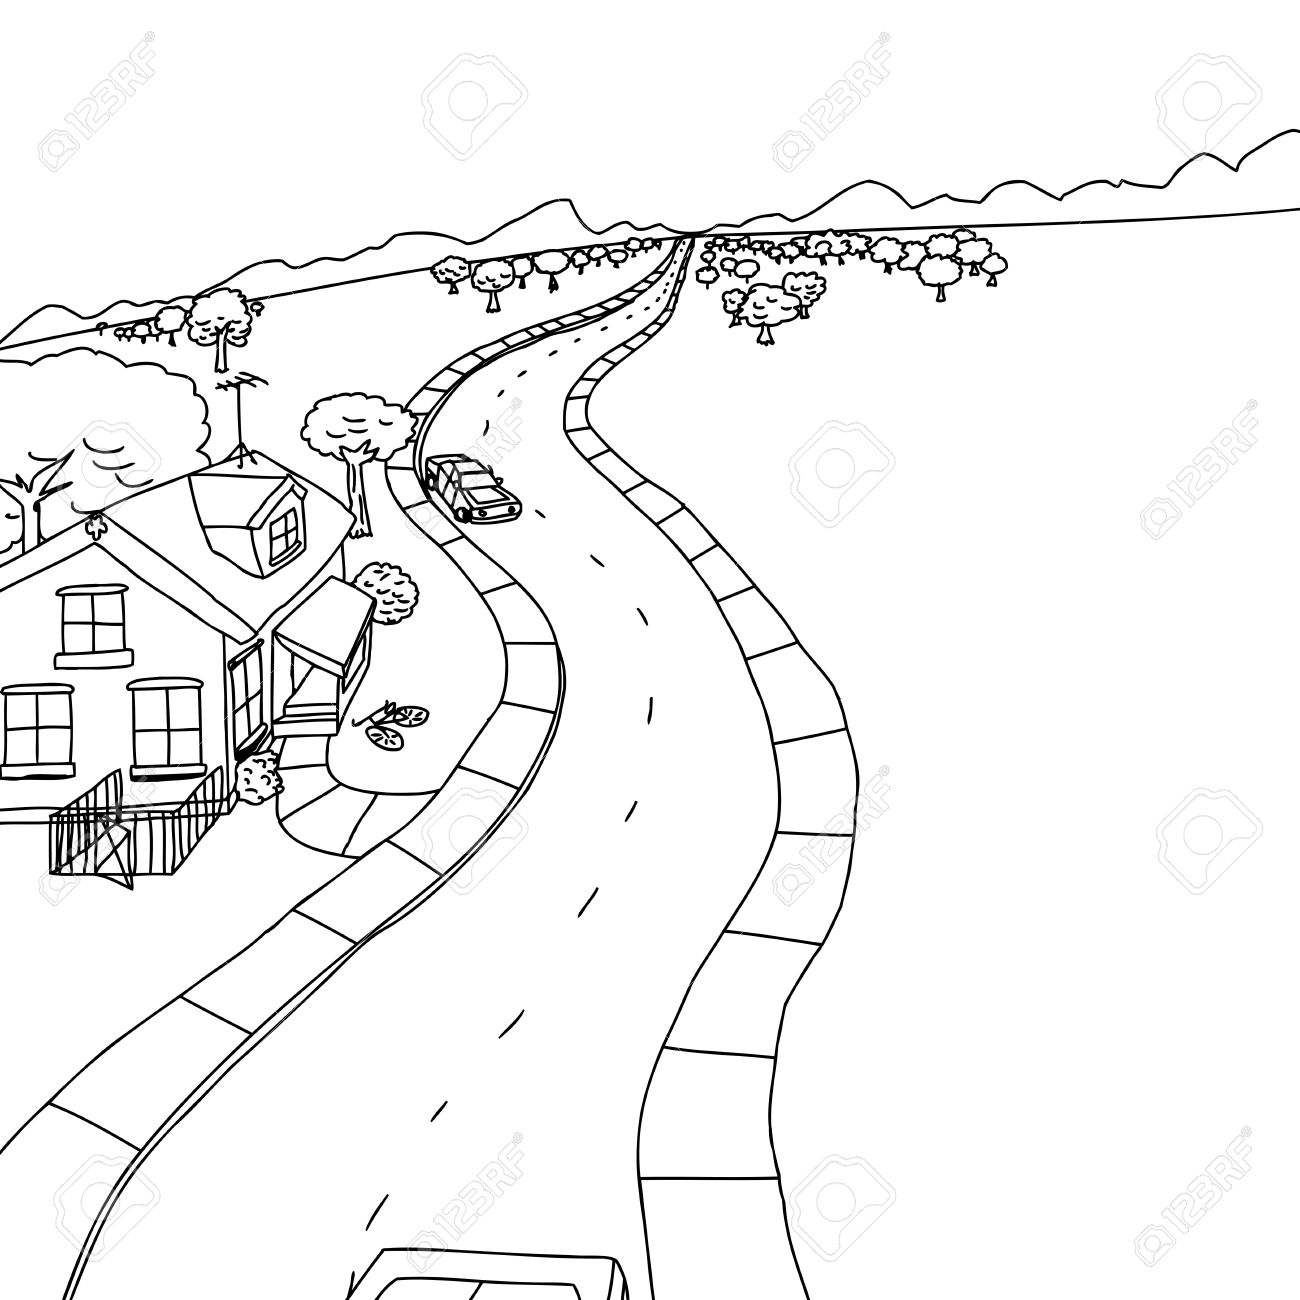 1300x1300 Outline Drawing Of House With Trees Along Road Royalty Free